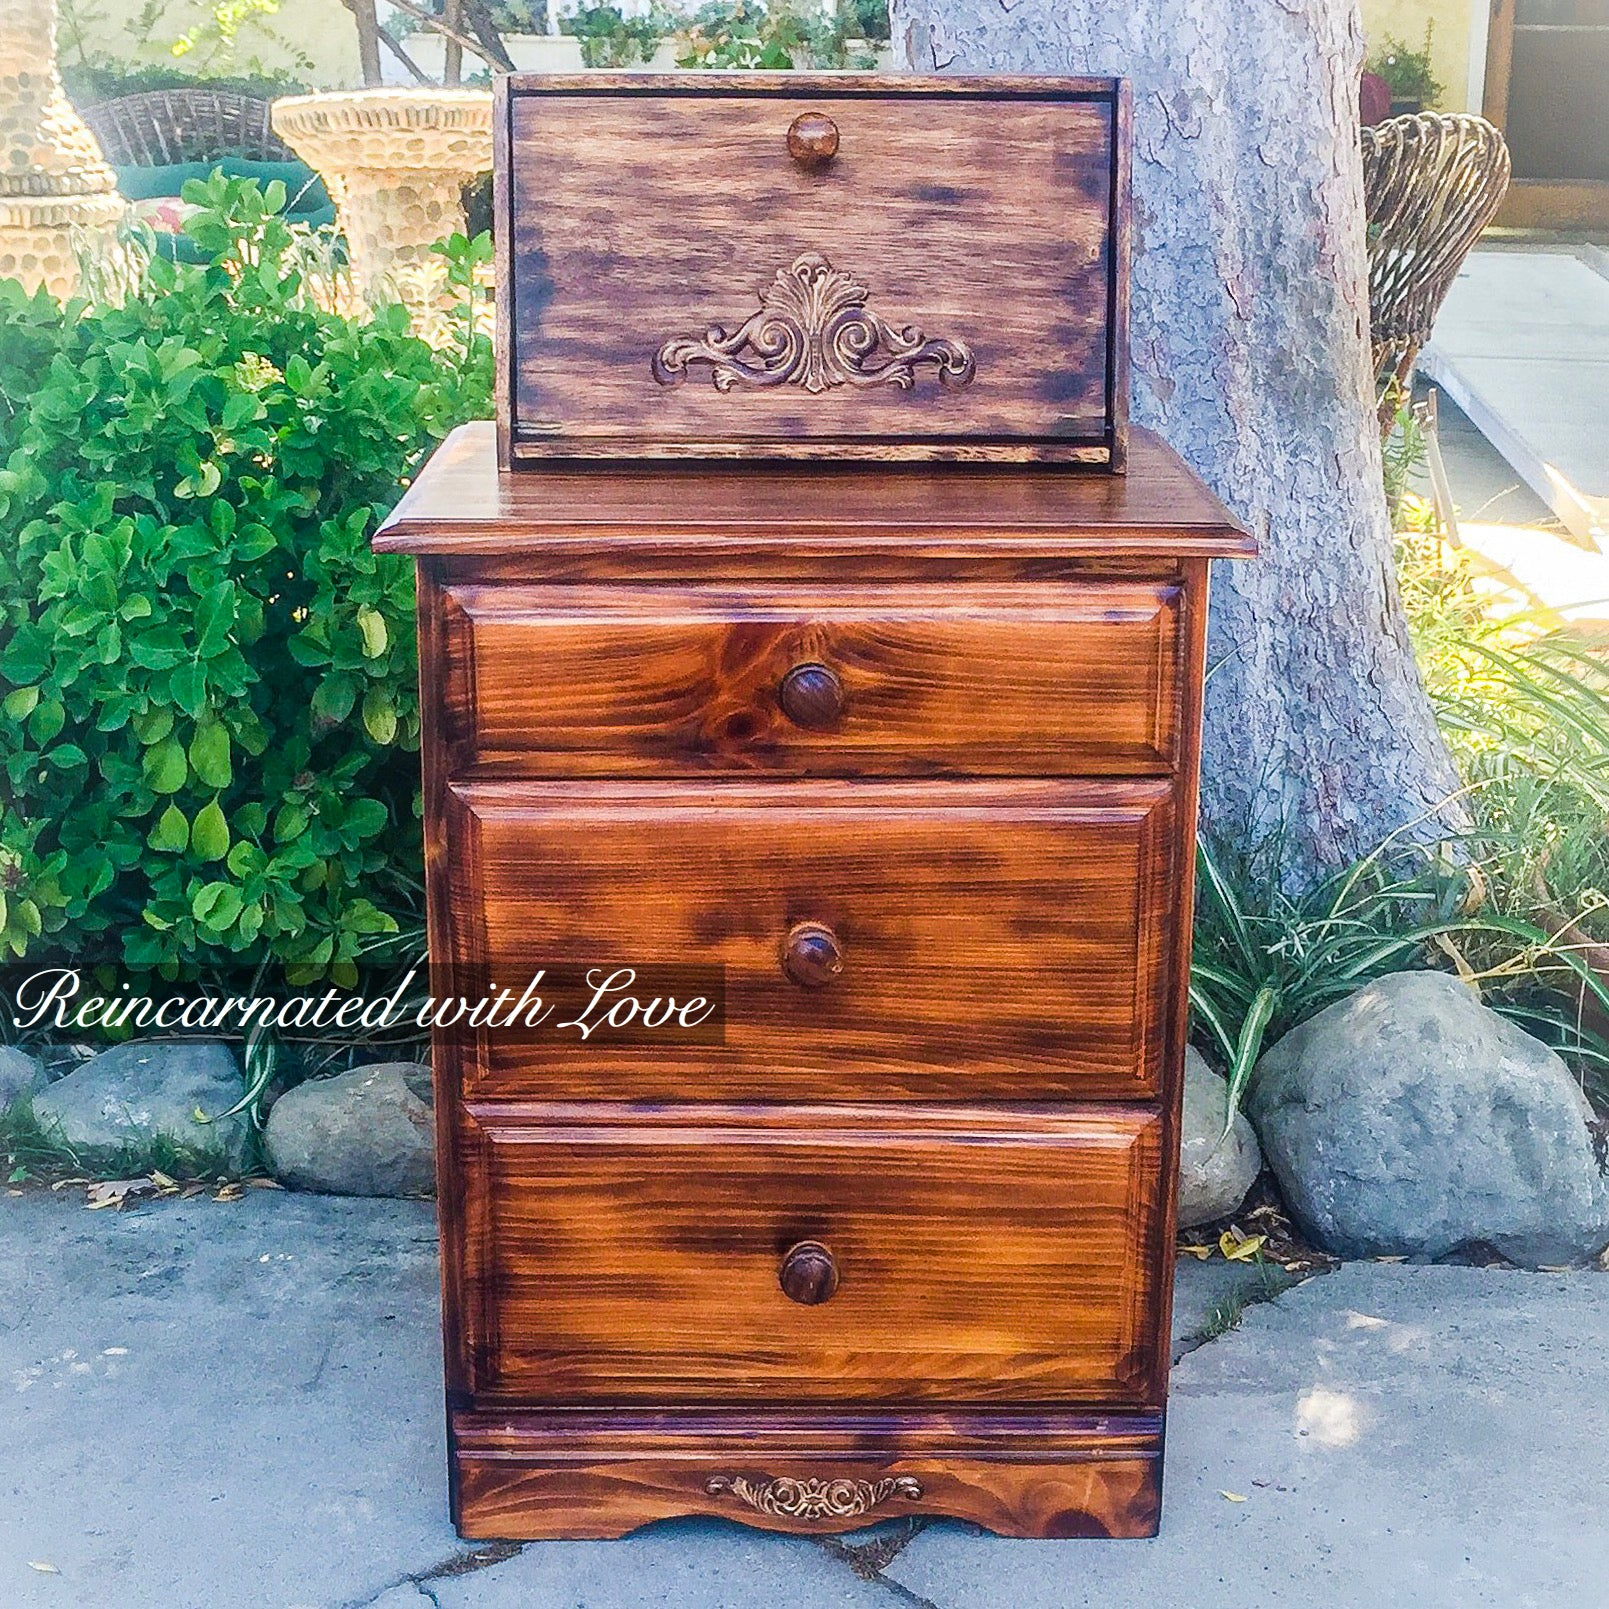 bedside table Torched rustic end table nightstand rustic side table wood upcycled rustic furniture Rustic Nightstand burnt wood